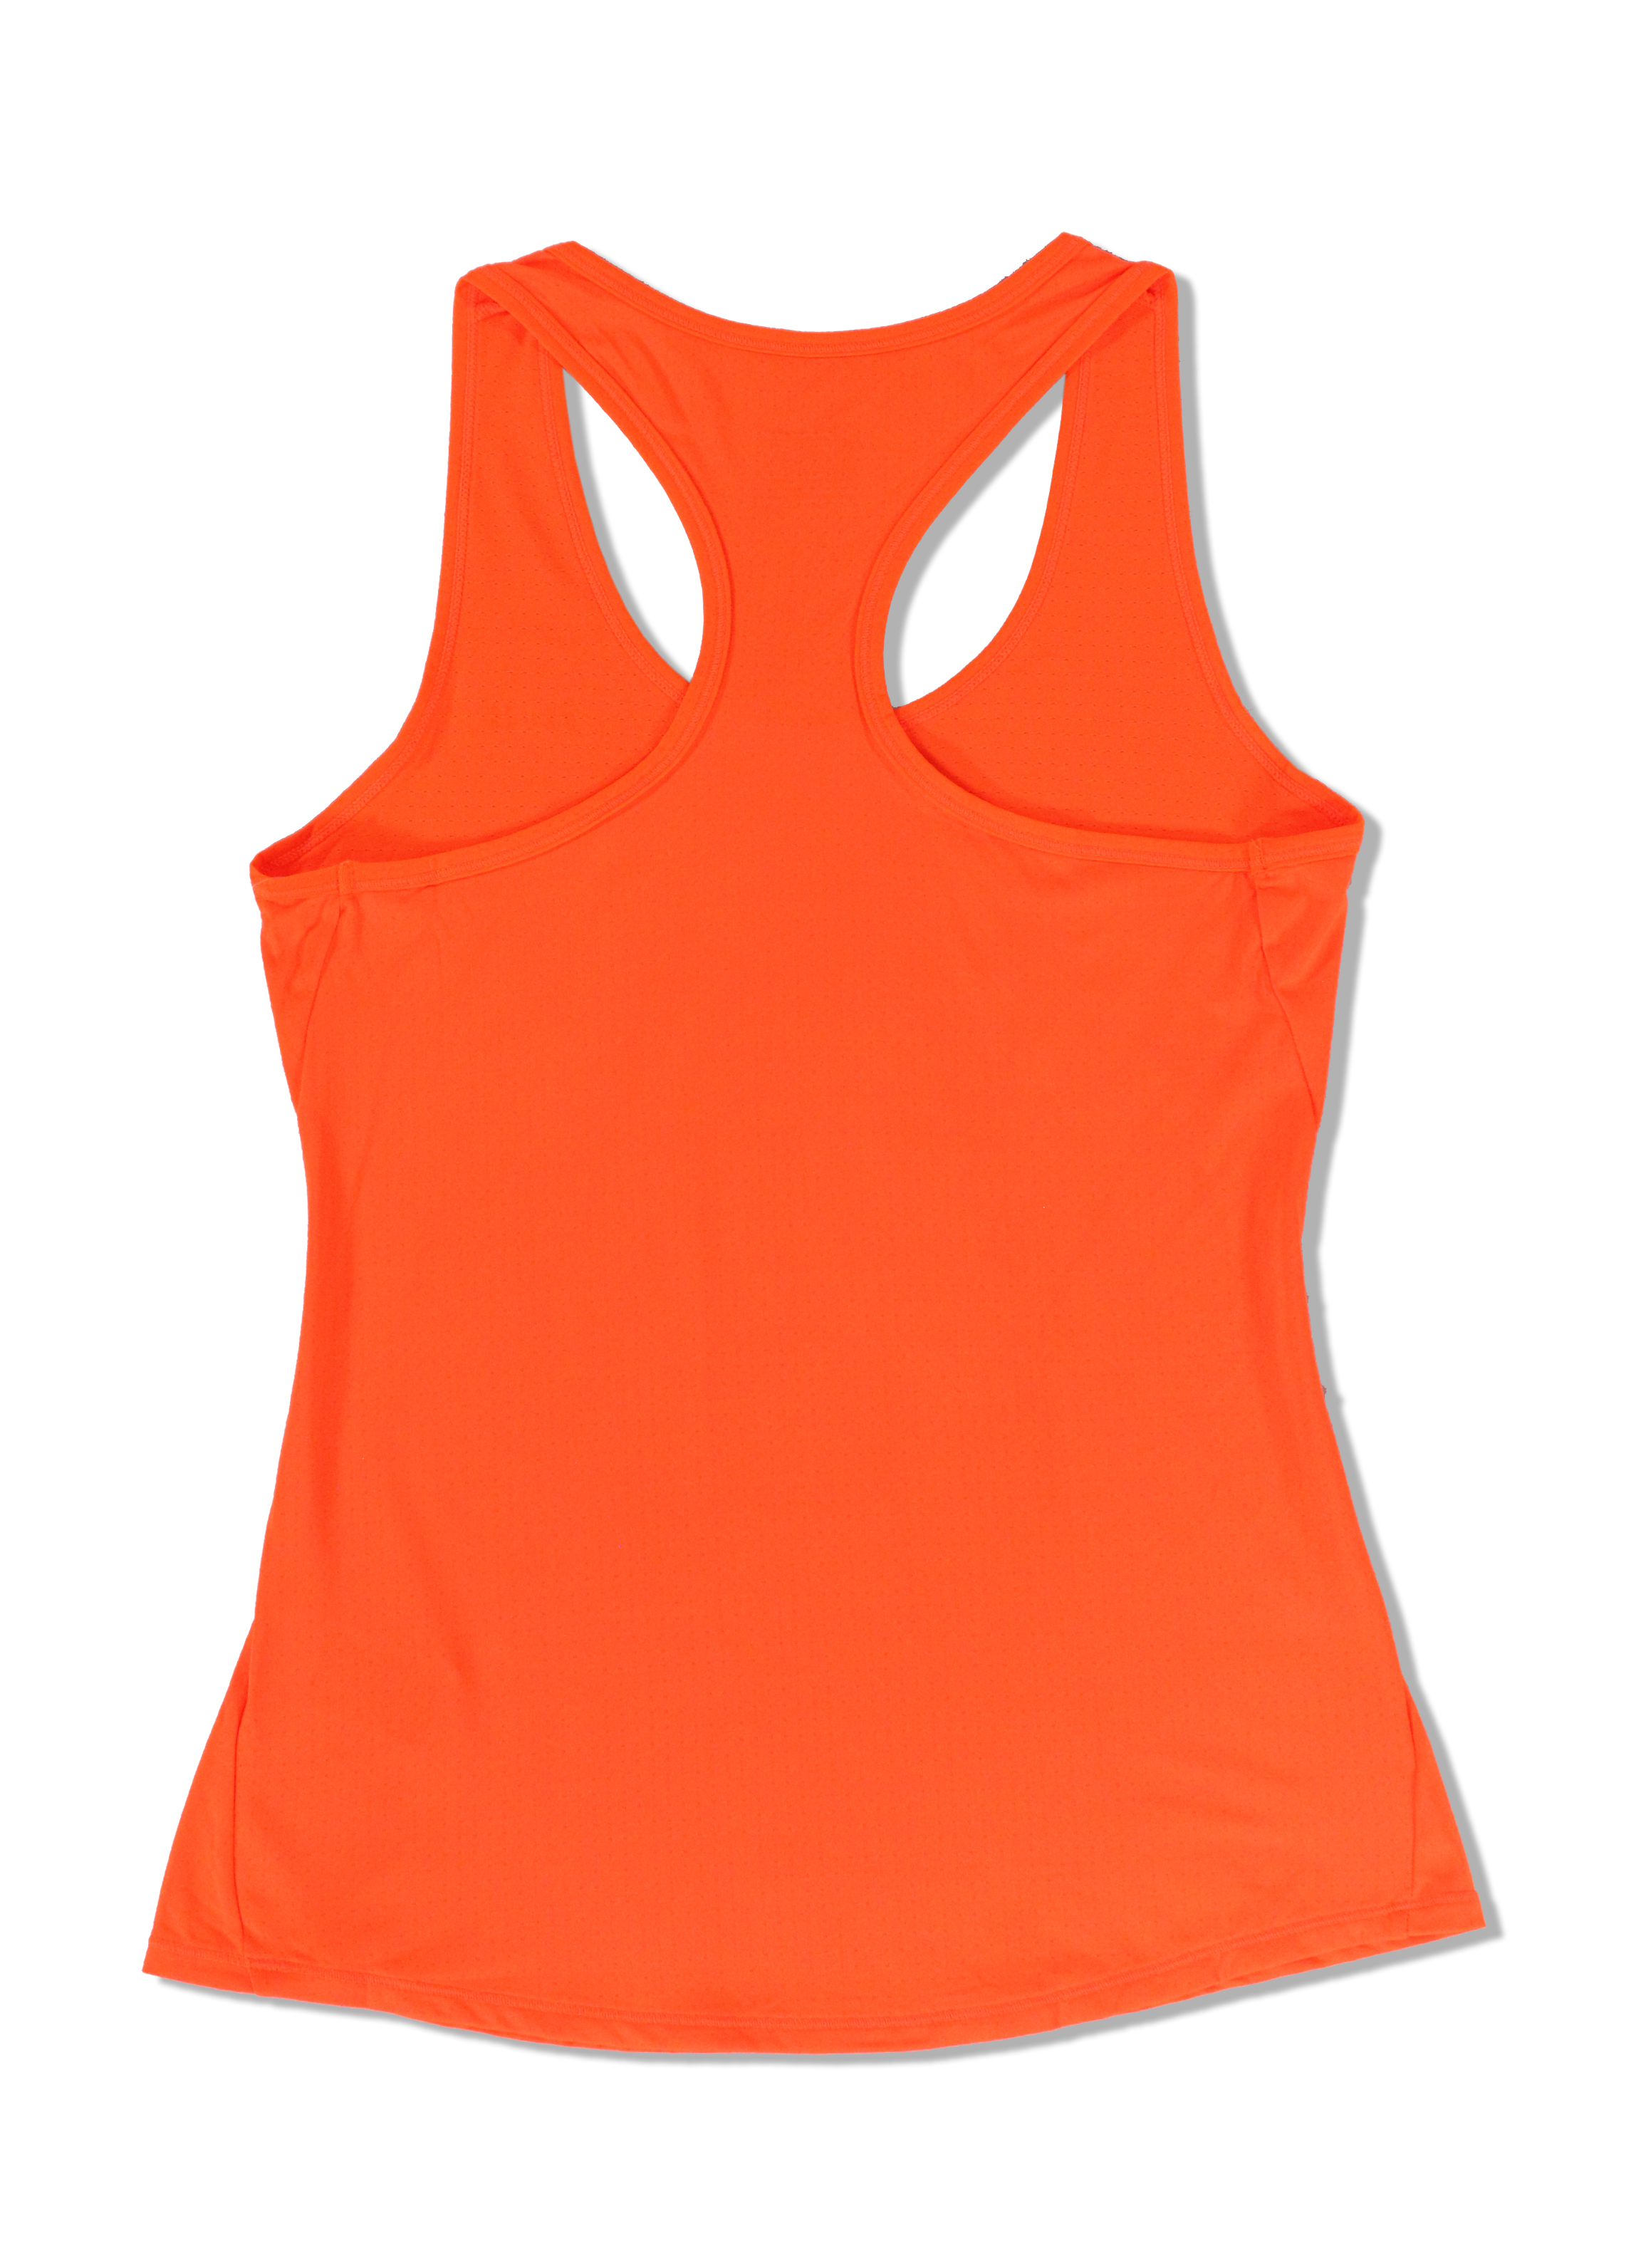 Asics-NEW-Solid-Tone-Women-039-s-Performance-Racerback-ASX-Dry-Tank-Top thumbnail 3